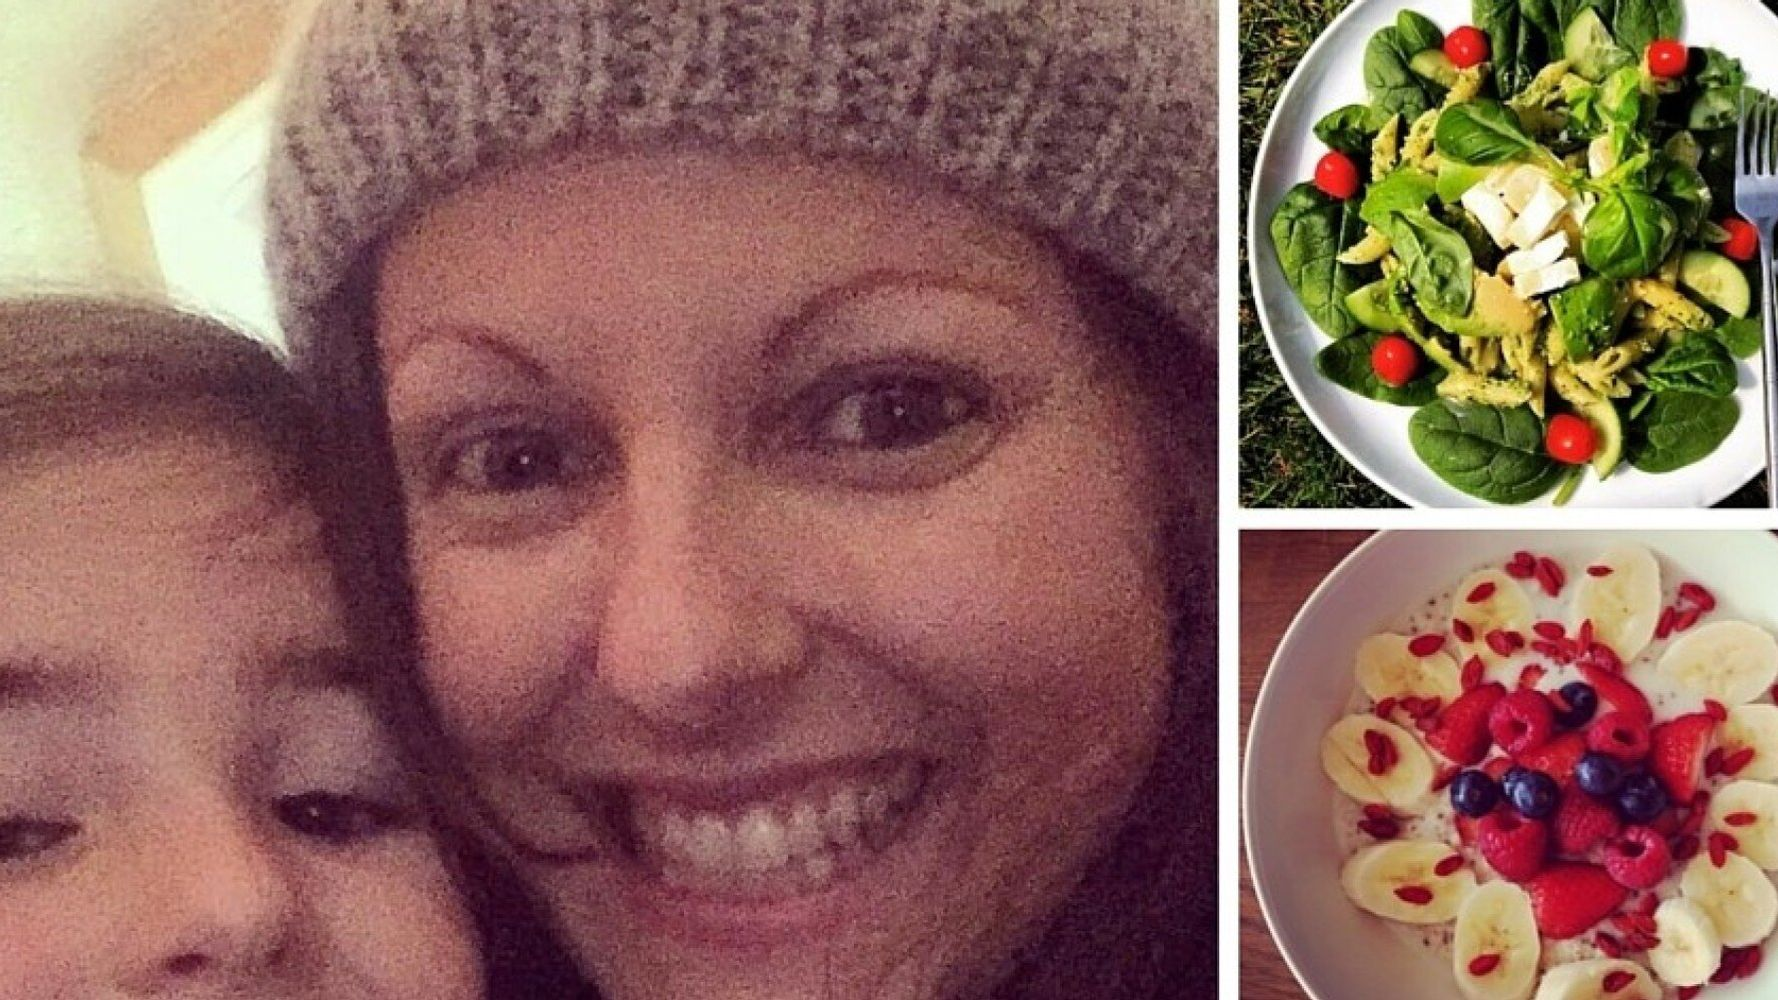 Stomach Cancer Patient Given Two Weeks To Live Claims Clean-Eating Helped Her Fight Disease